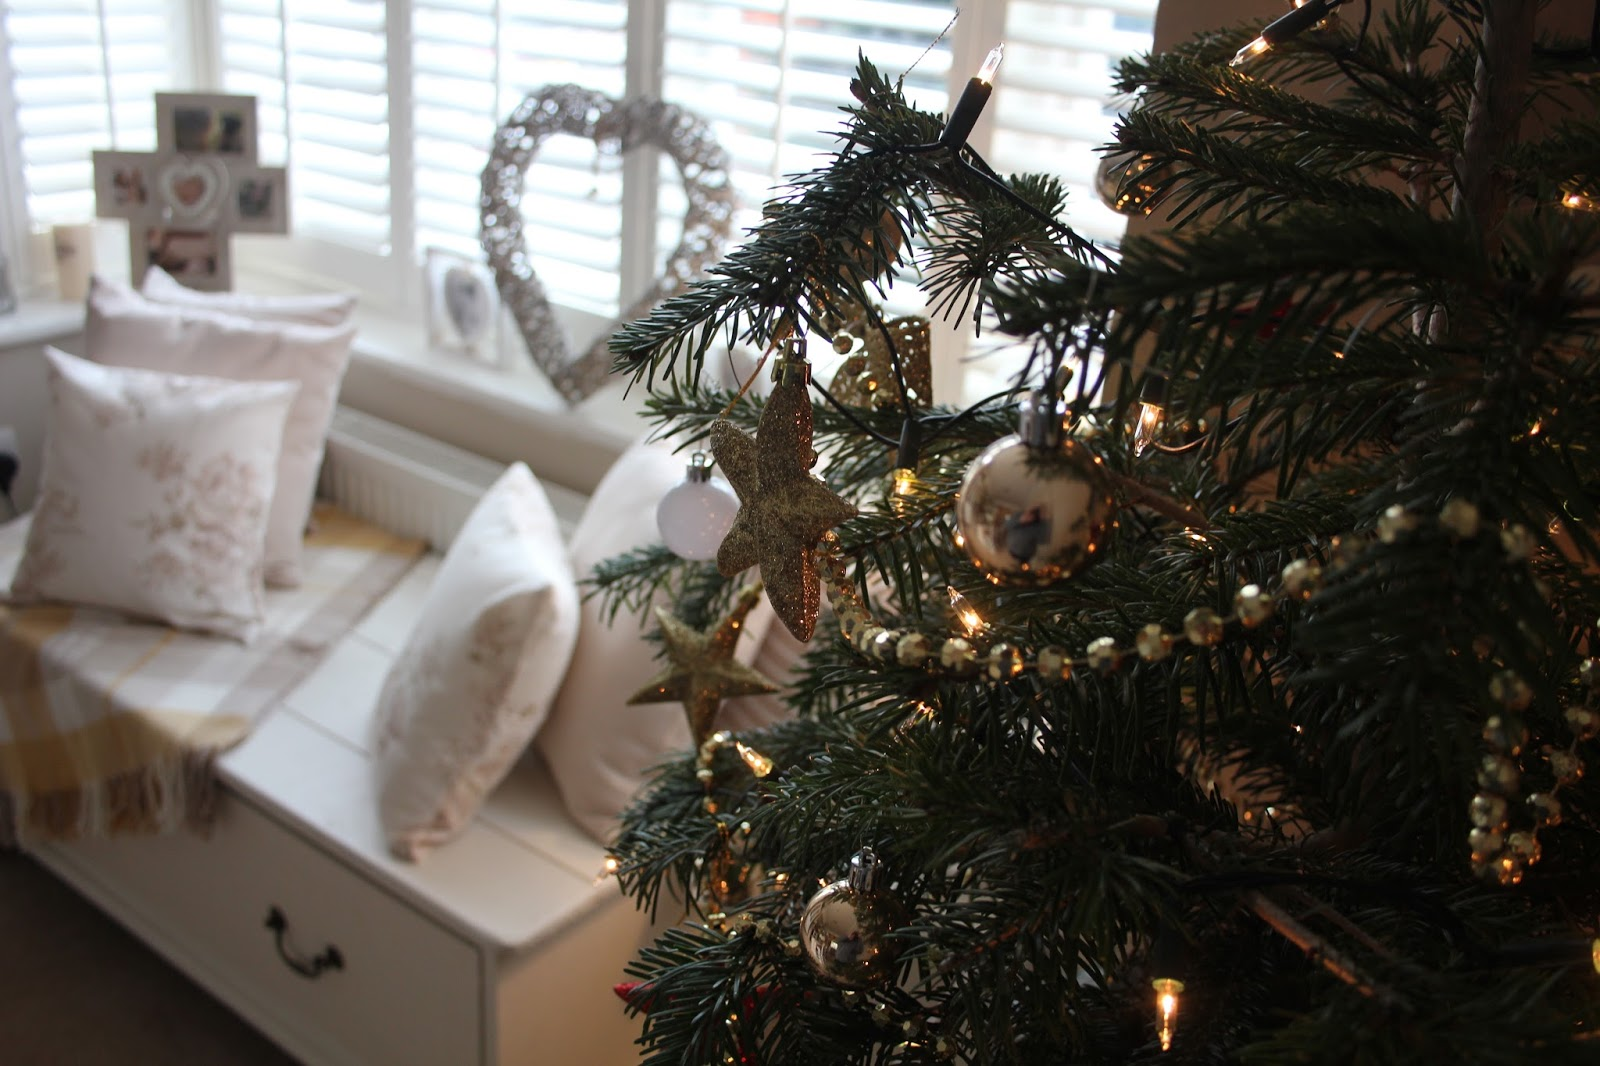 As My Blog Post Yesterday Thehomethatjingled Has Taken Off So Well Ive Loved Seeing All Your Beautiful Homes Decorated For Christmas